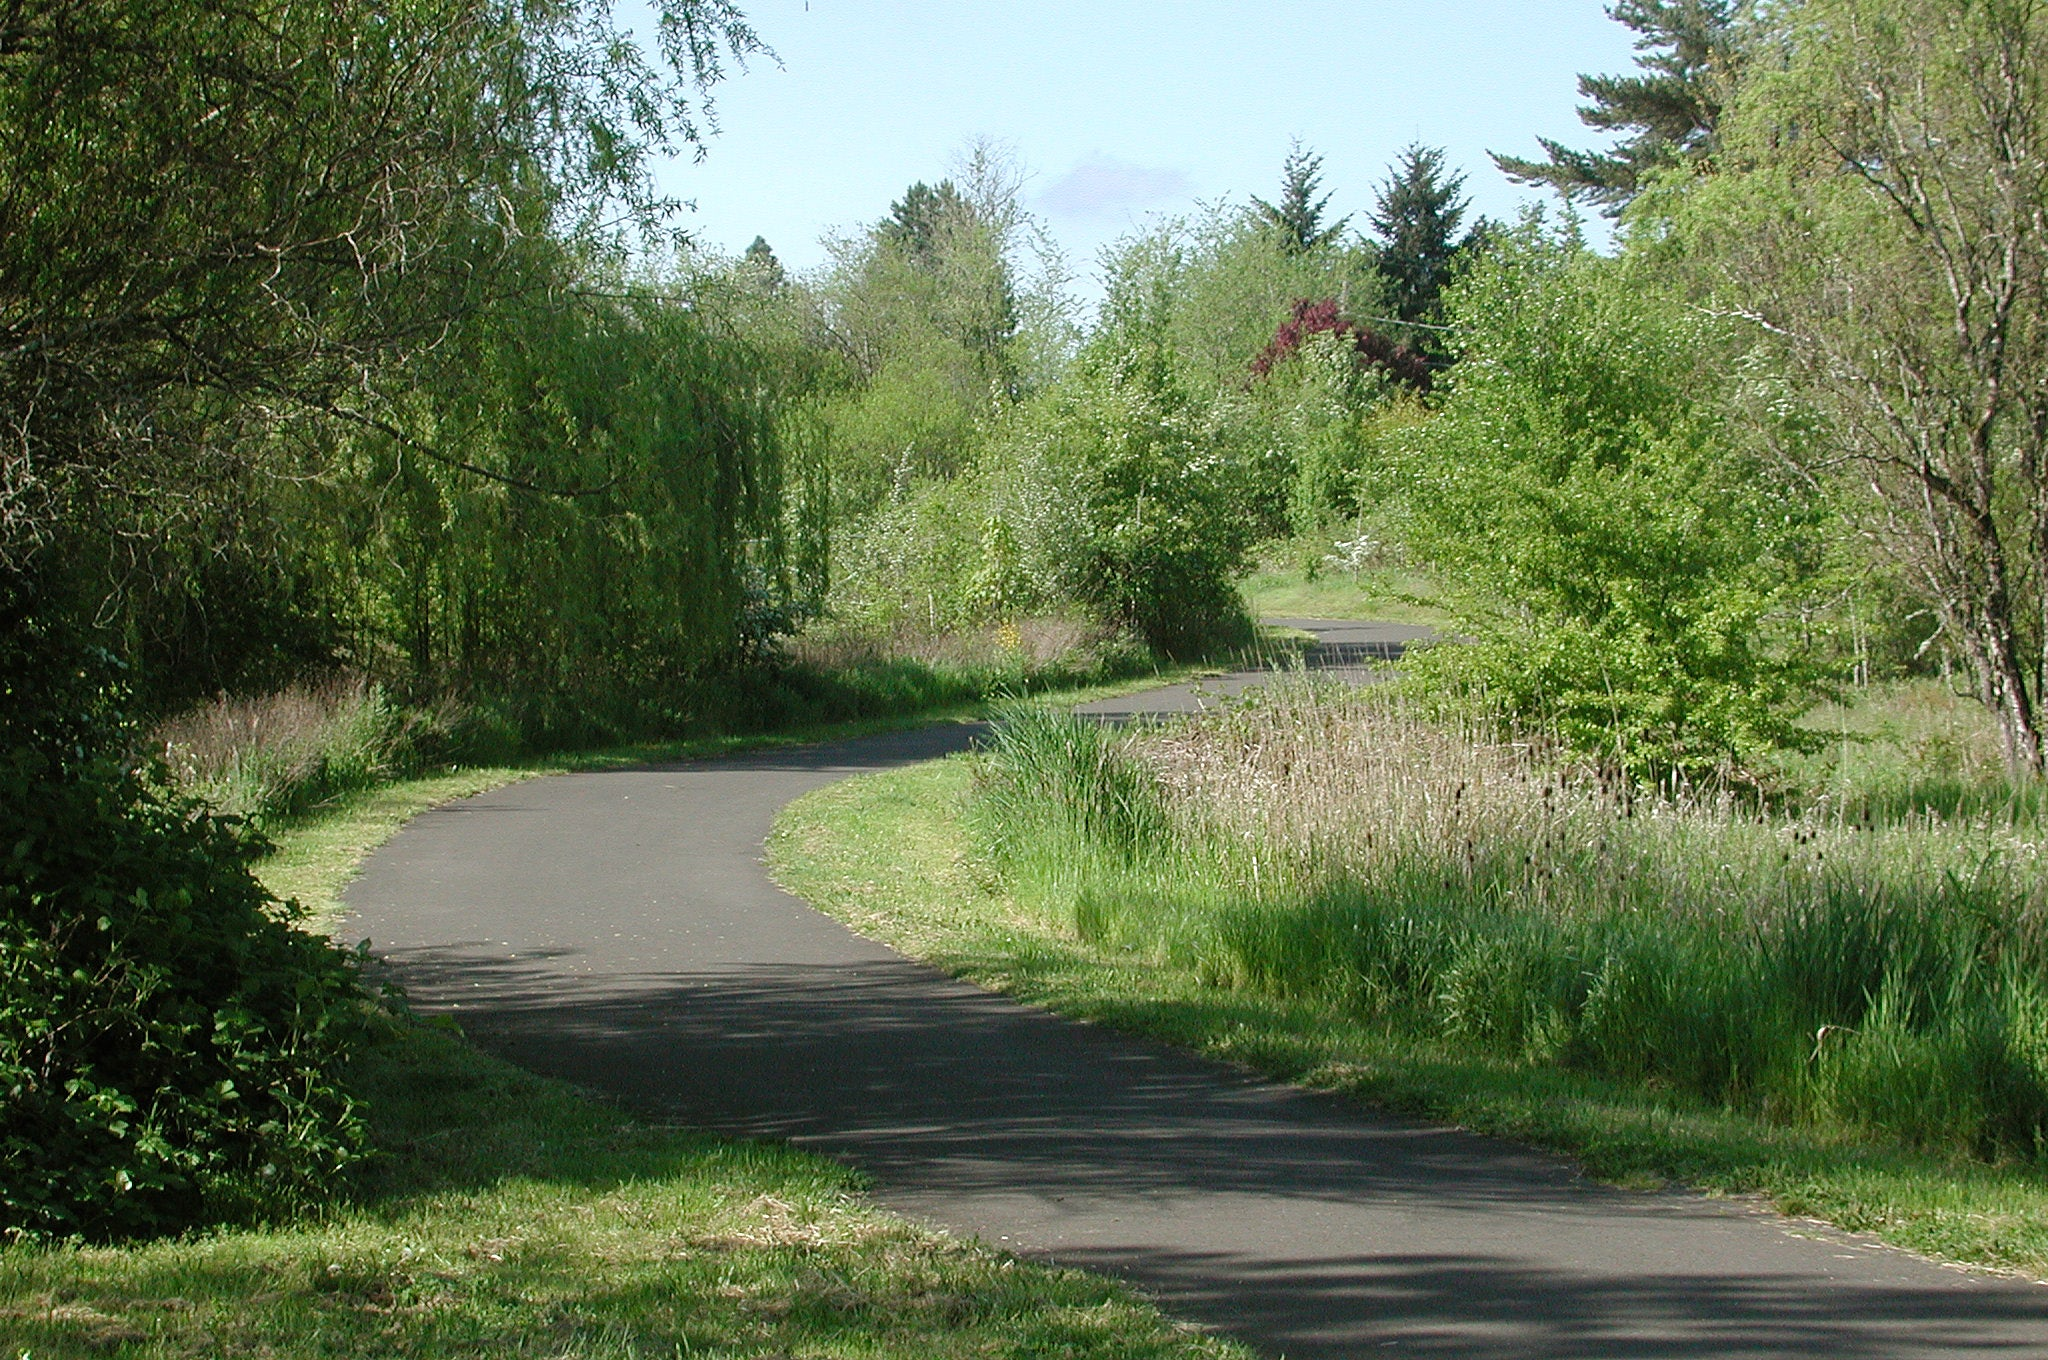 Fanno Creek Greenway Trail Beaverton Tigard Oregon